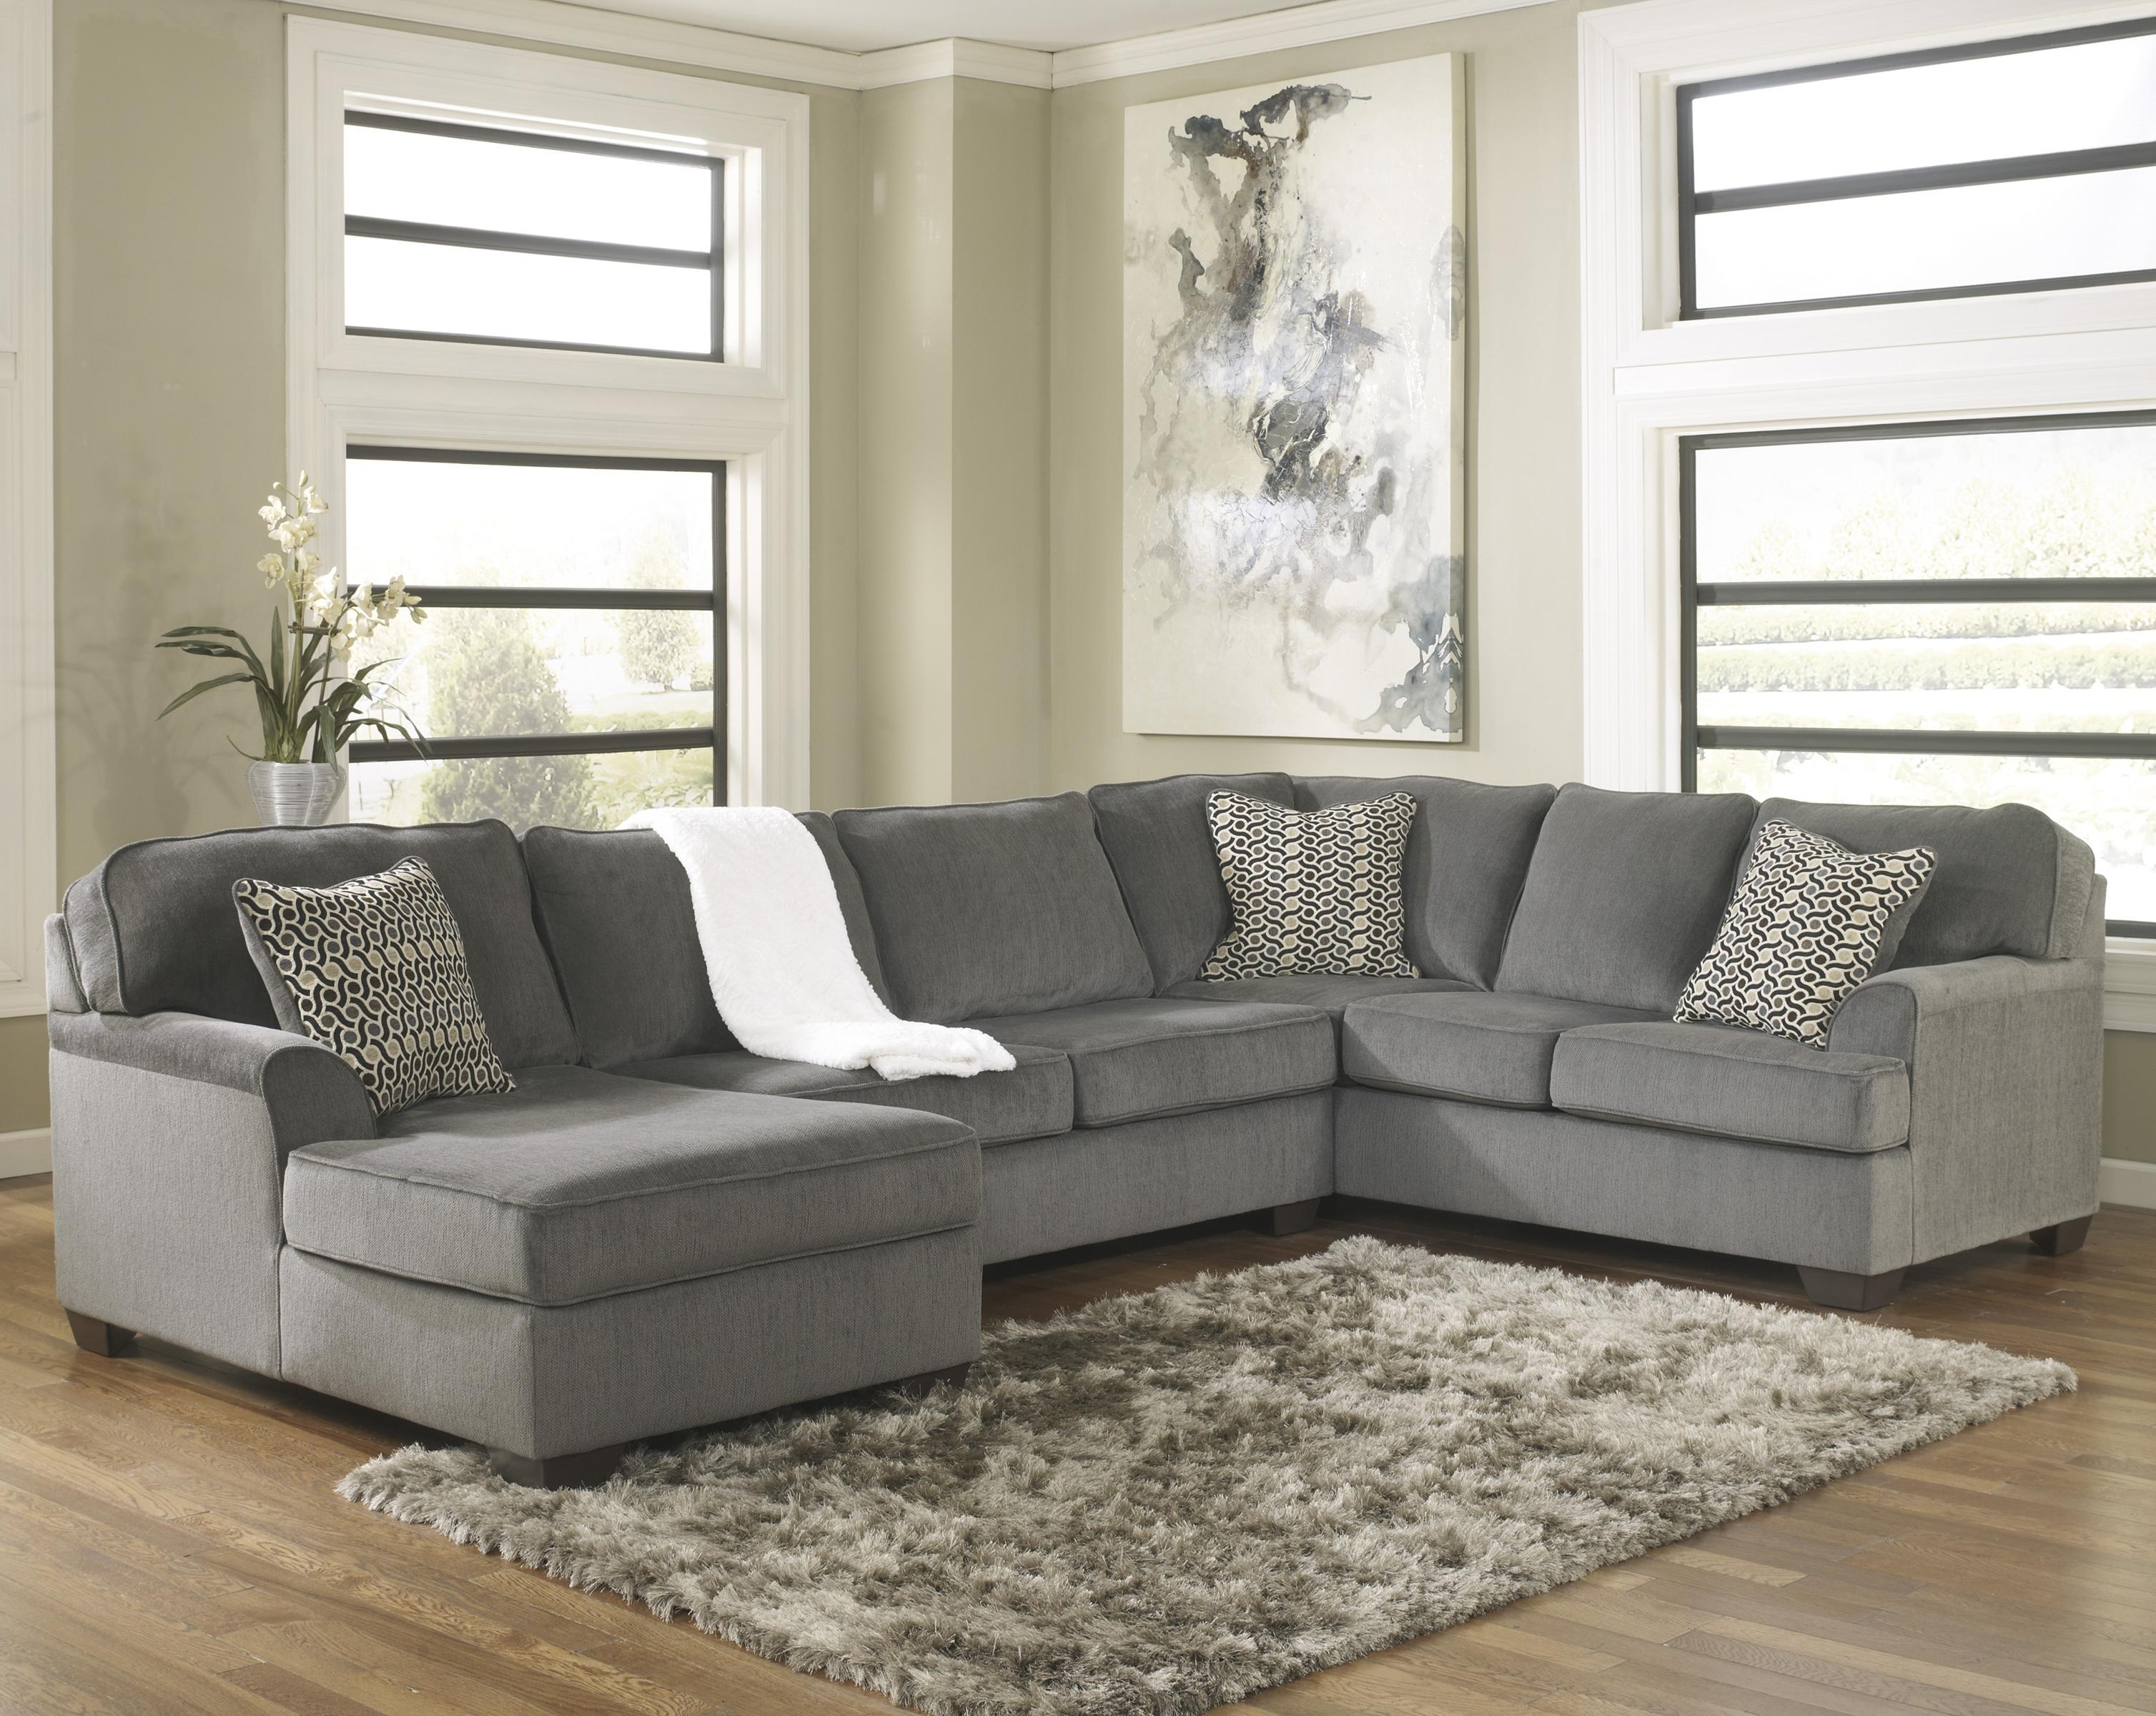 Ashley Furniture Sectionals With Chaise Intended For Recent Ashley Furniture Loric – Smoke Contemporary 3 Piece Sectional With (View 3 of 15)